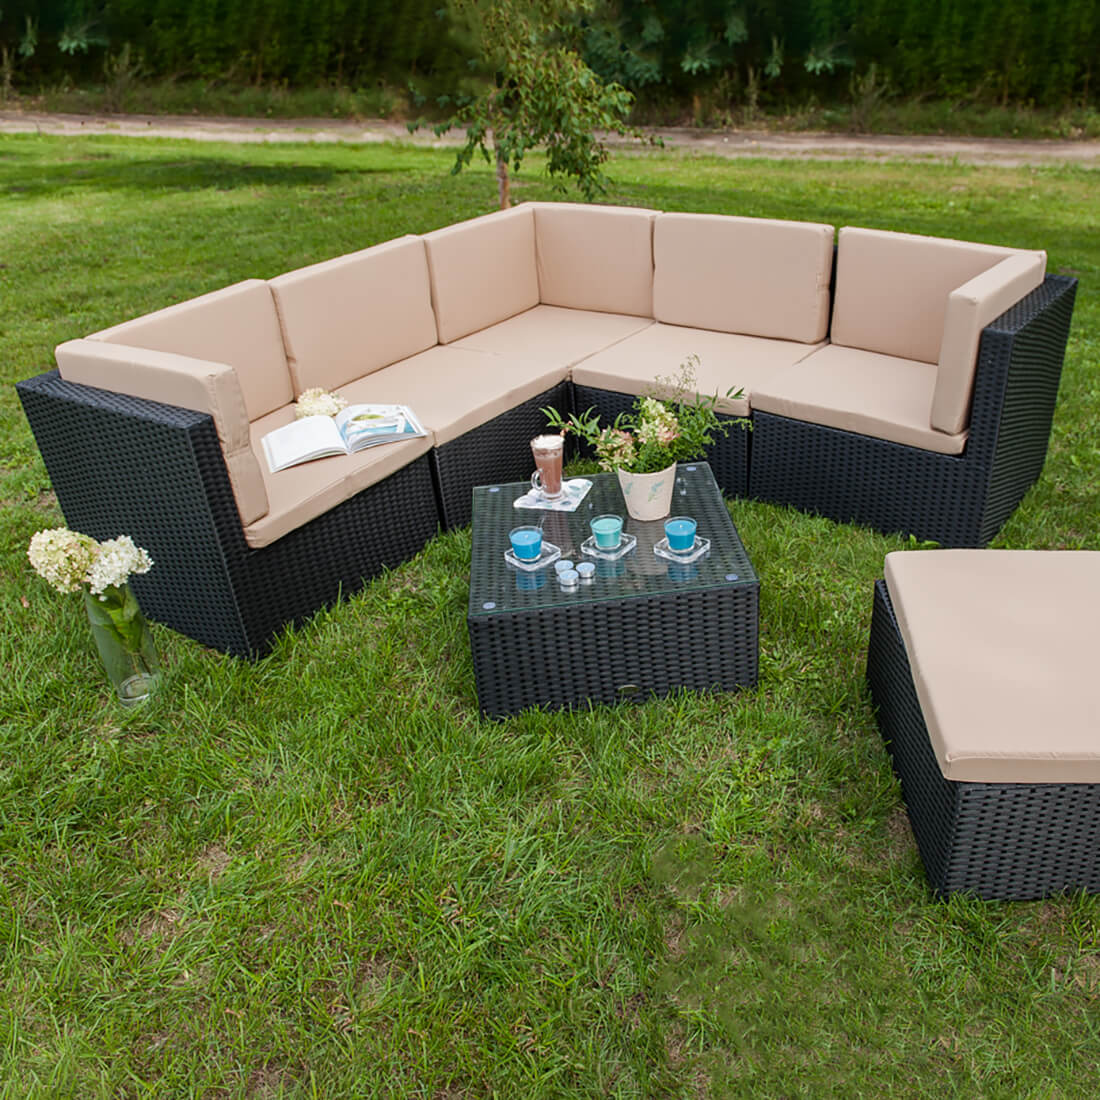 Tinto XL outdoor set